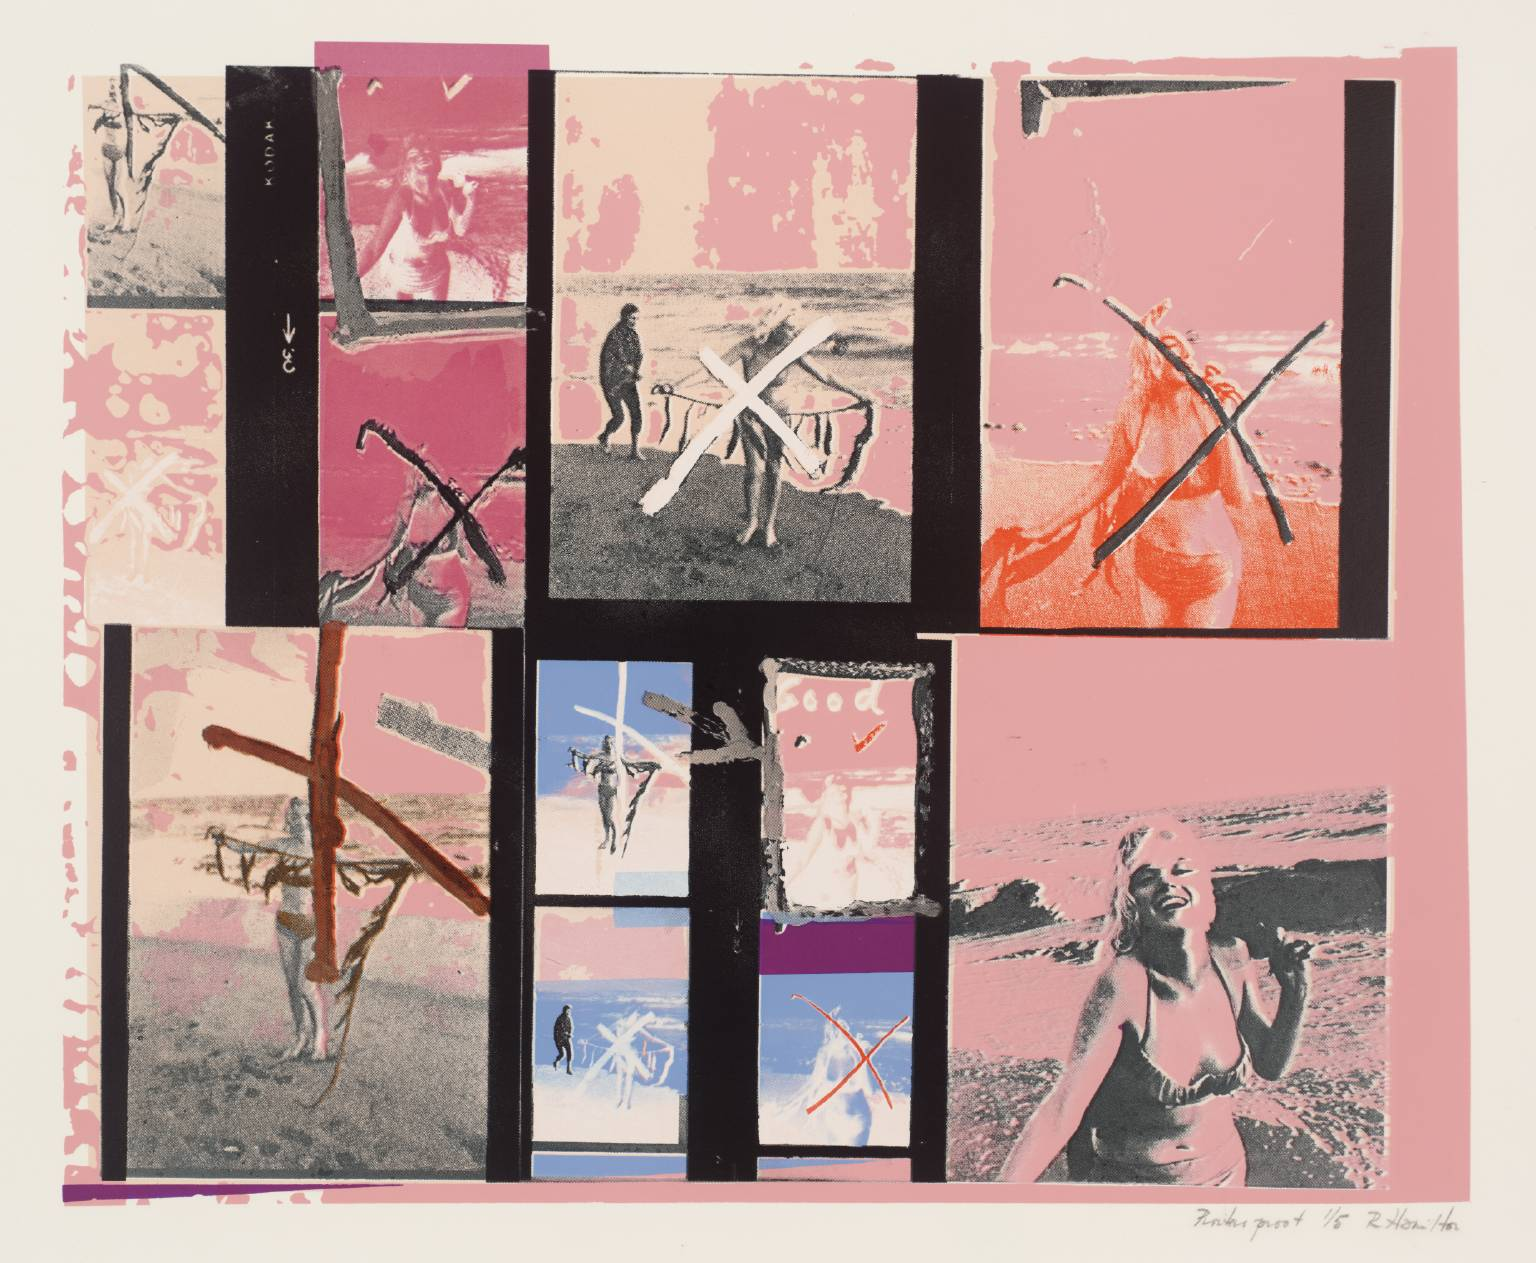 My Marilyn 1965 Richard Hamilton 1922-2011 Presented by Rose and Chris Prater through the Institute of Contemporary Prints 1975. Image: Tate